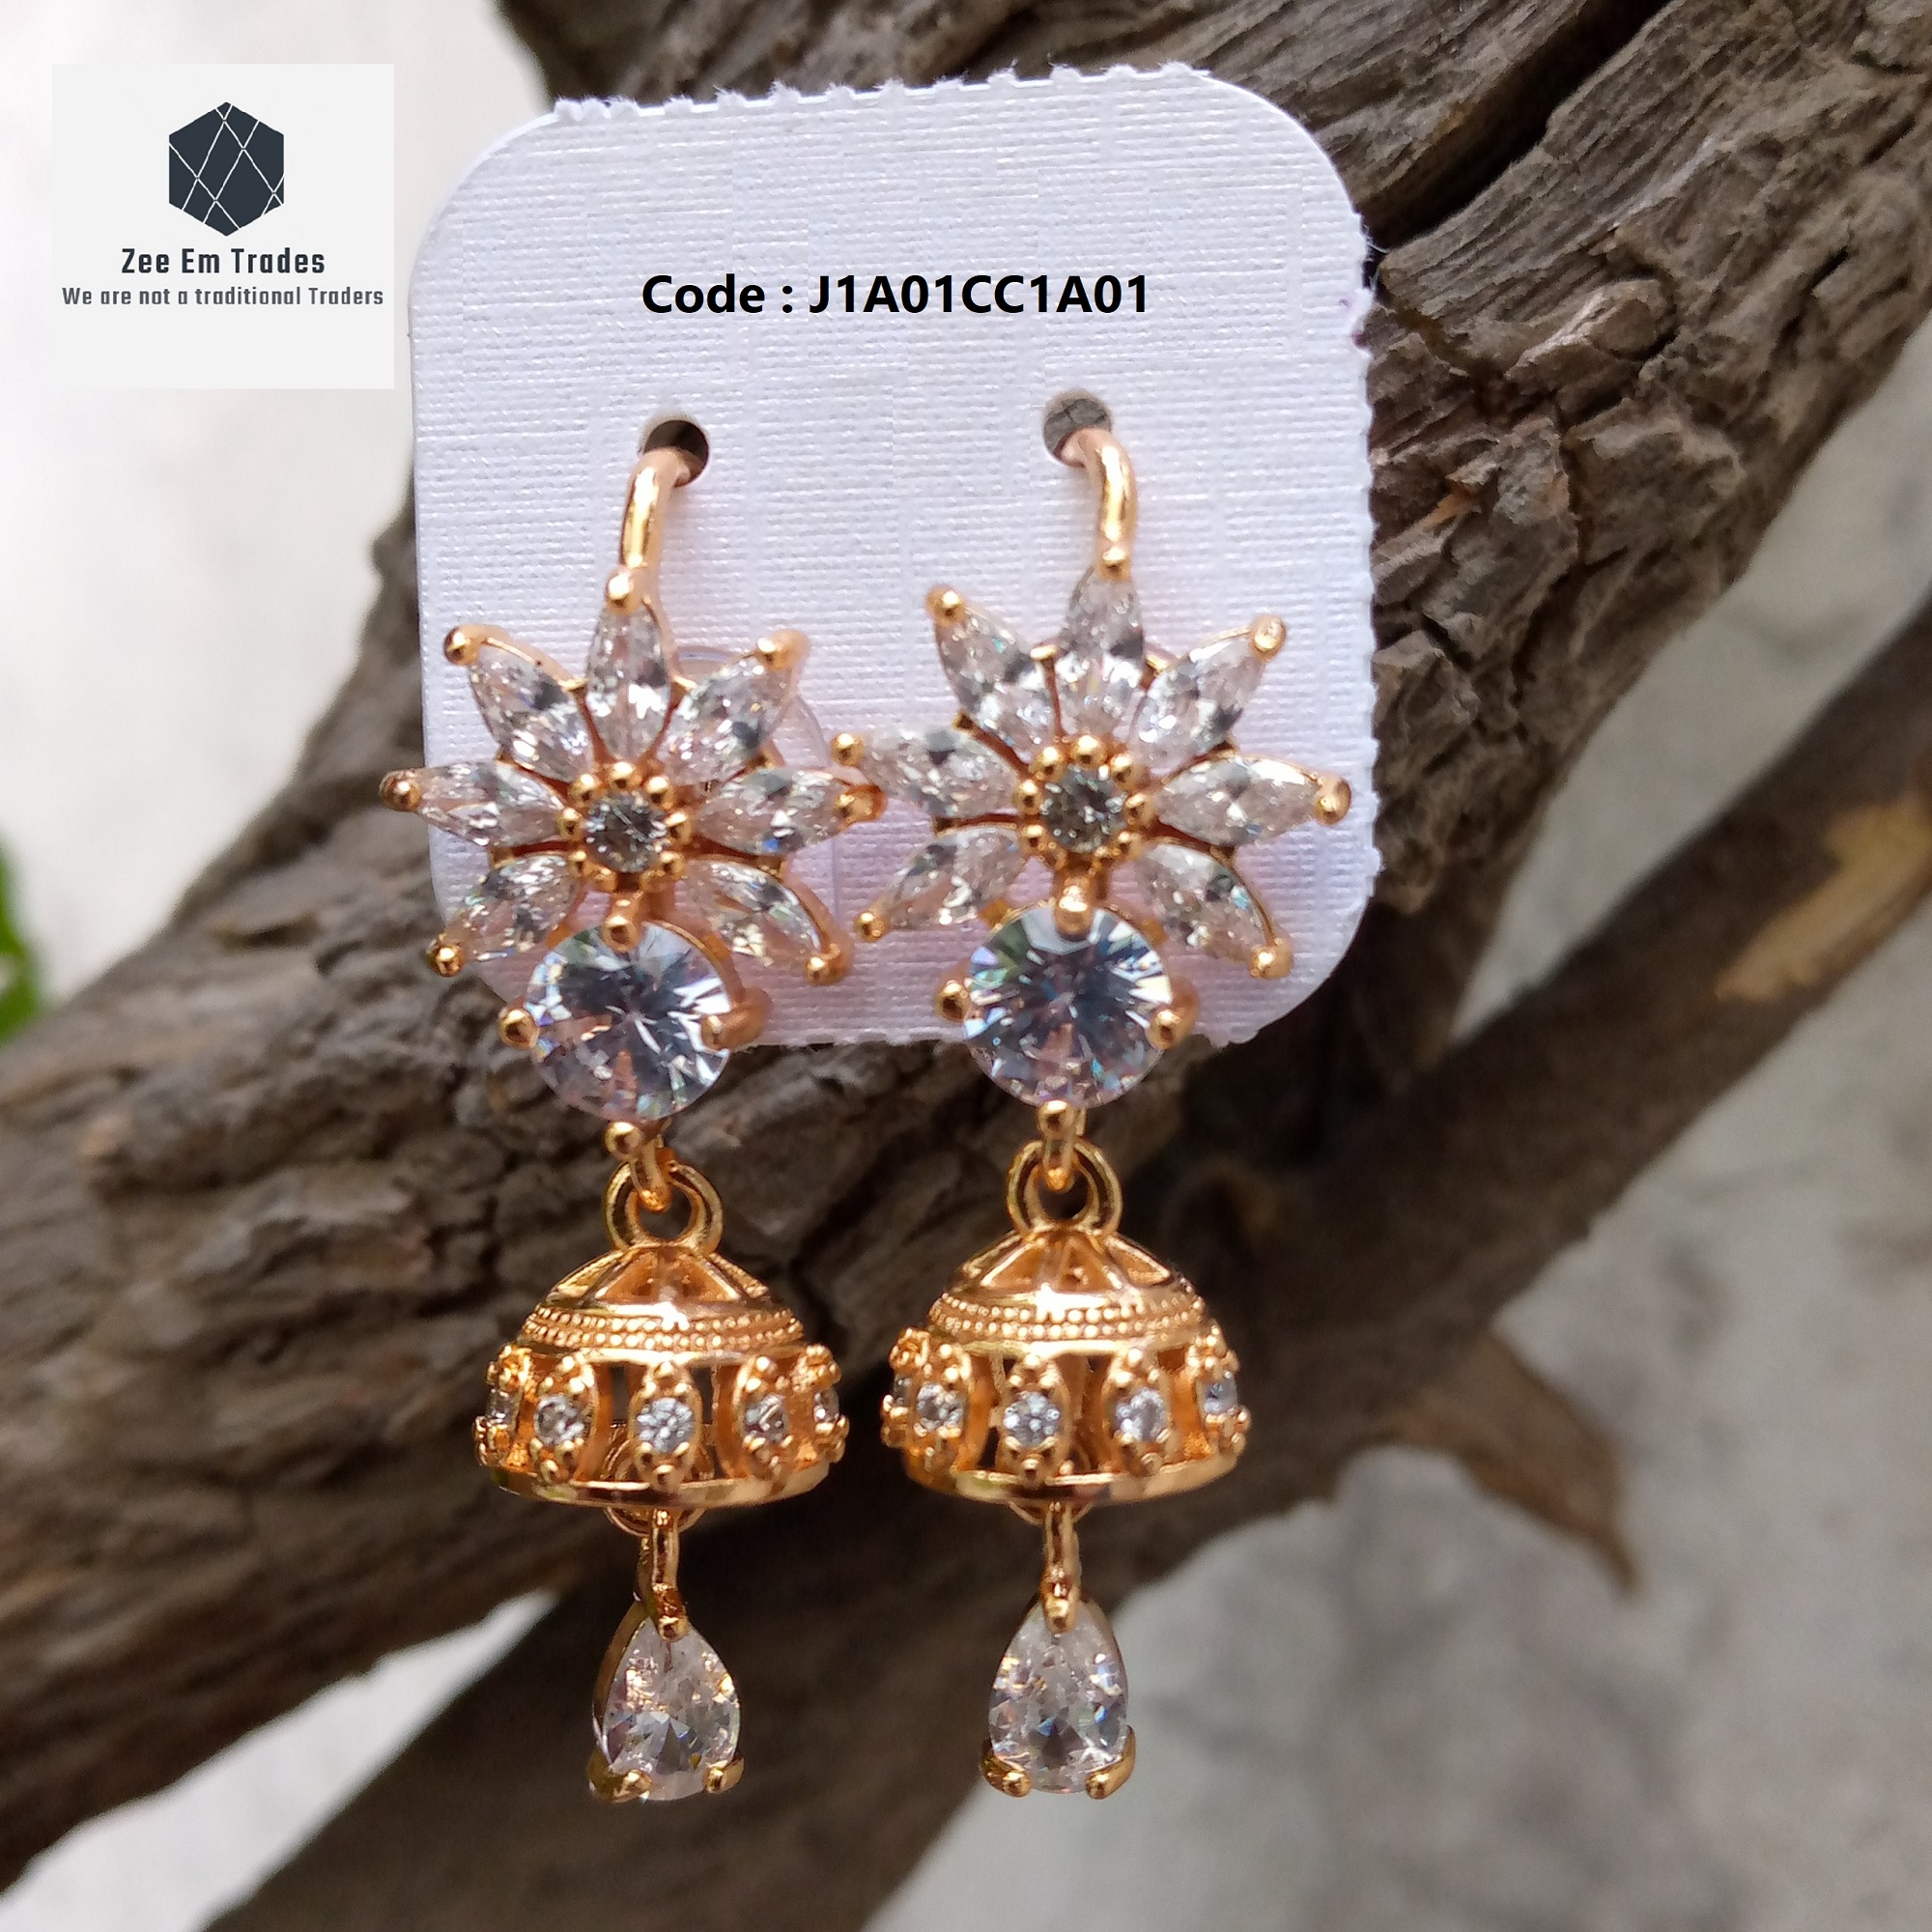 Women's and Girls Four Season Fashion Jewellery, Earrings Unique Classic Party Collection for Casual, Wedding, Party and Events, Golden Flower Shape Earring with White Crystal Colour Stones, High Quality Jhumki